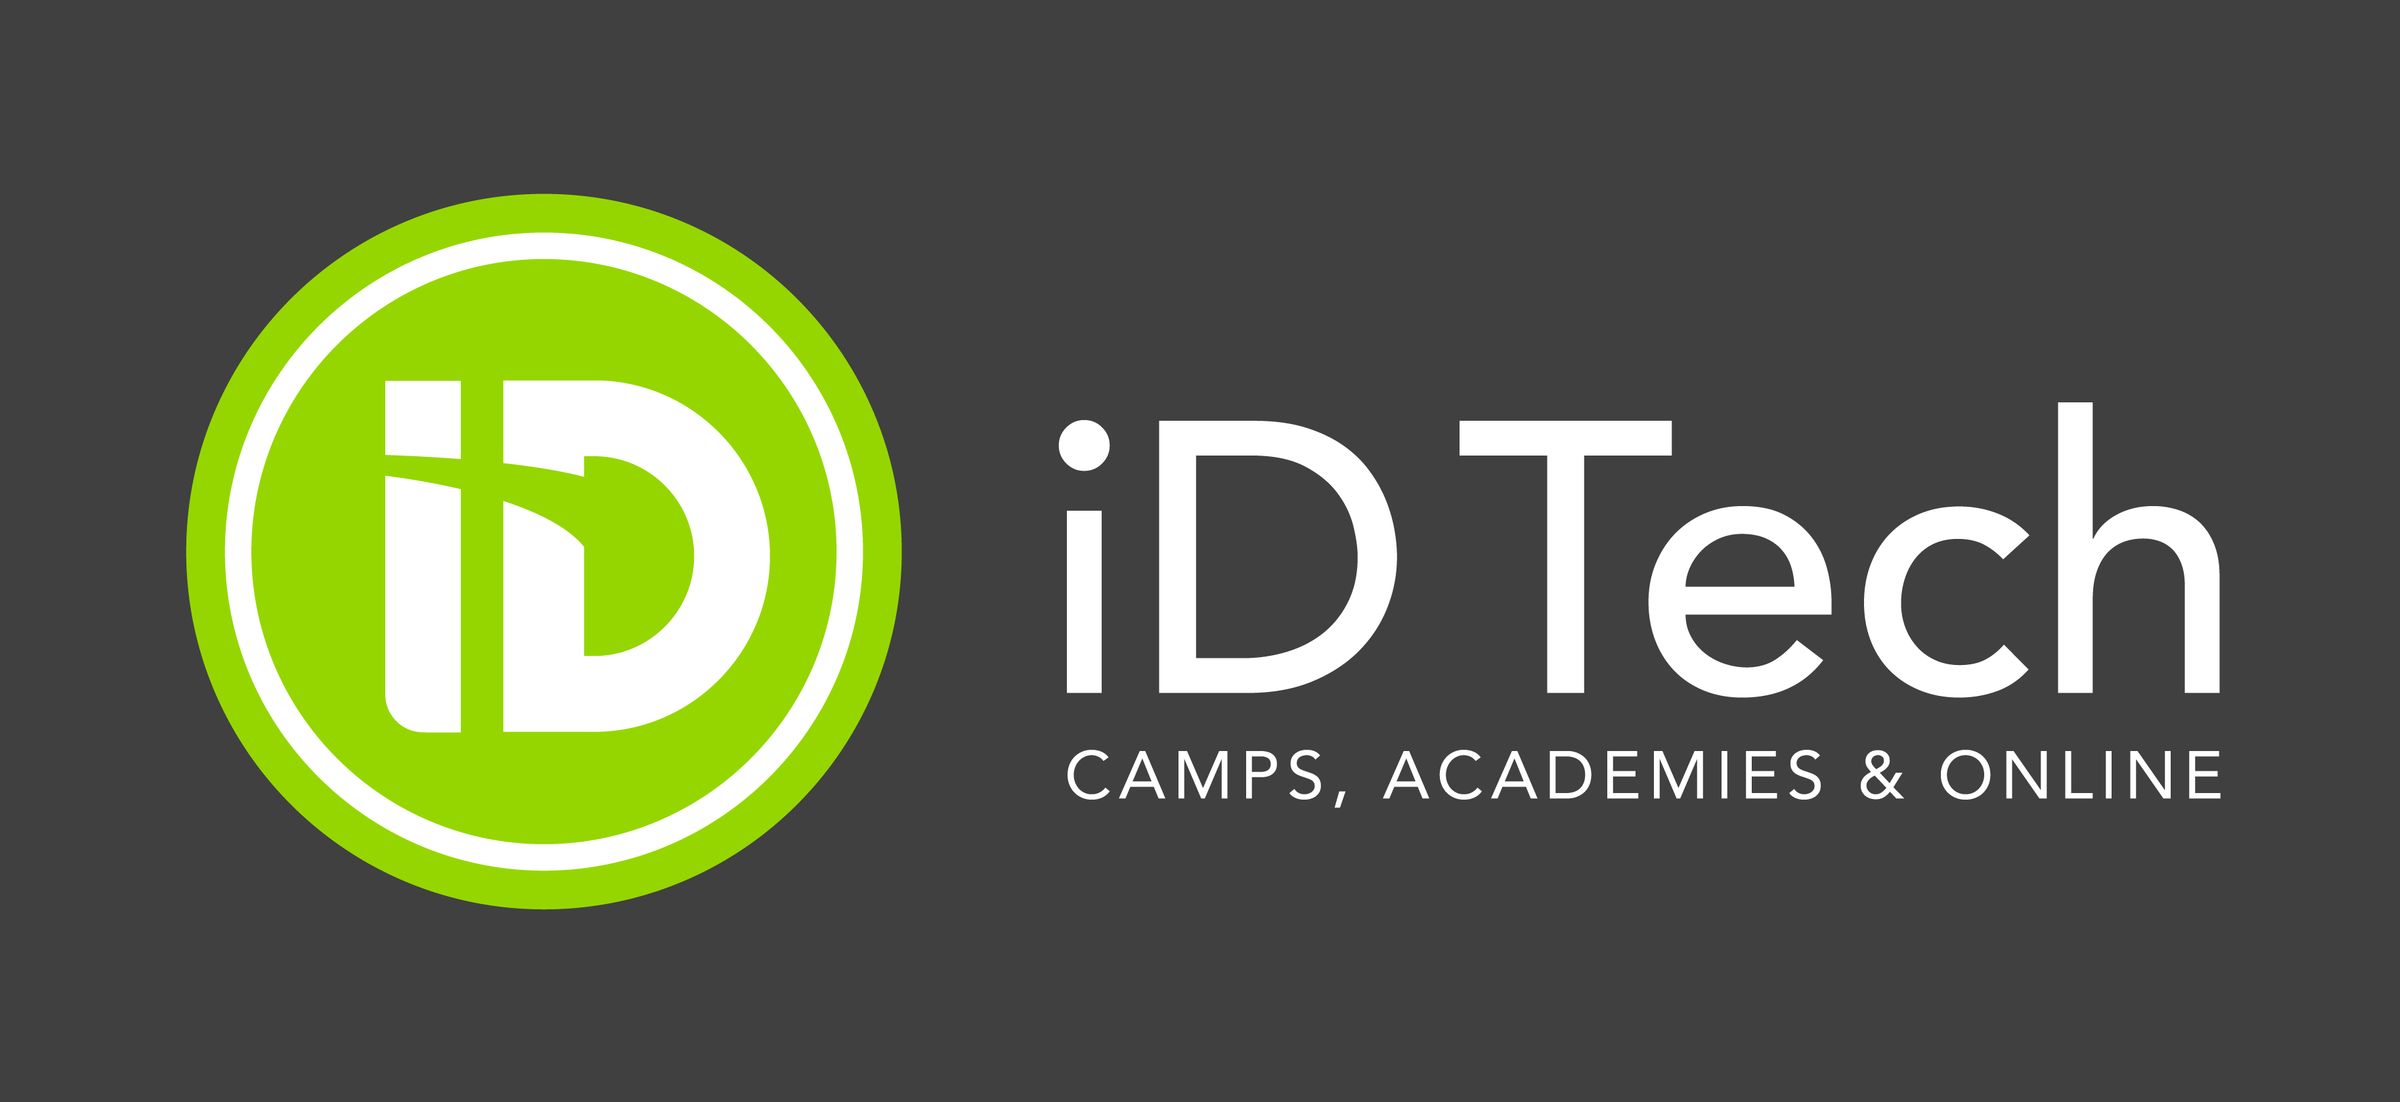 iD Tech Camps: #1 in STEM Education - Held at University of Idaho Boise